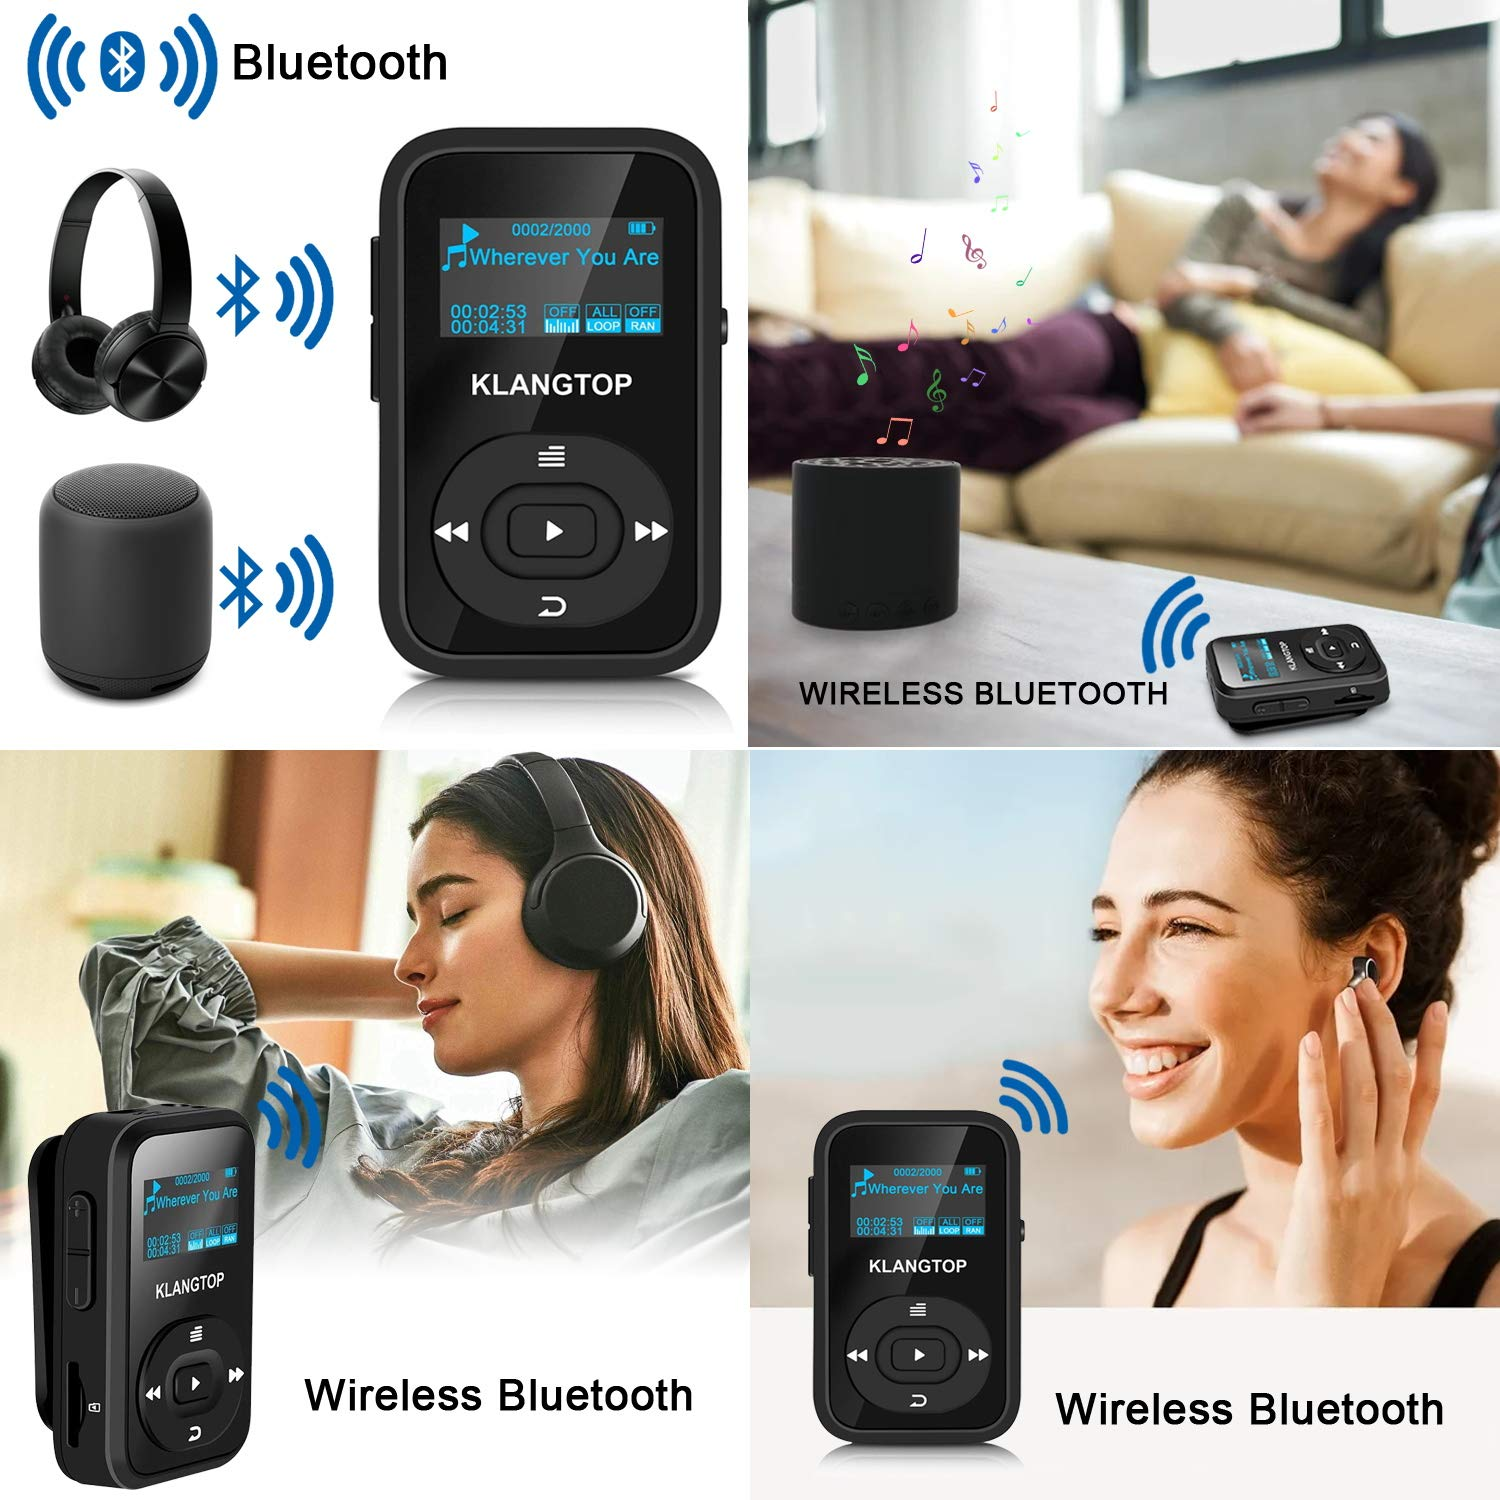 MP3 Player Bluetooth 8GB KLANGTOP Digital Clip Music Player with FM Radio Voice Record Function Special Design for Sport and Music Lovers